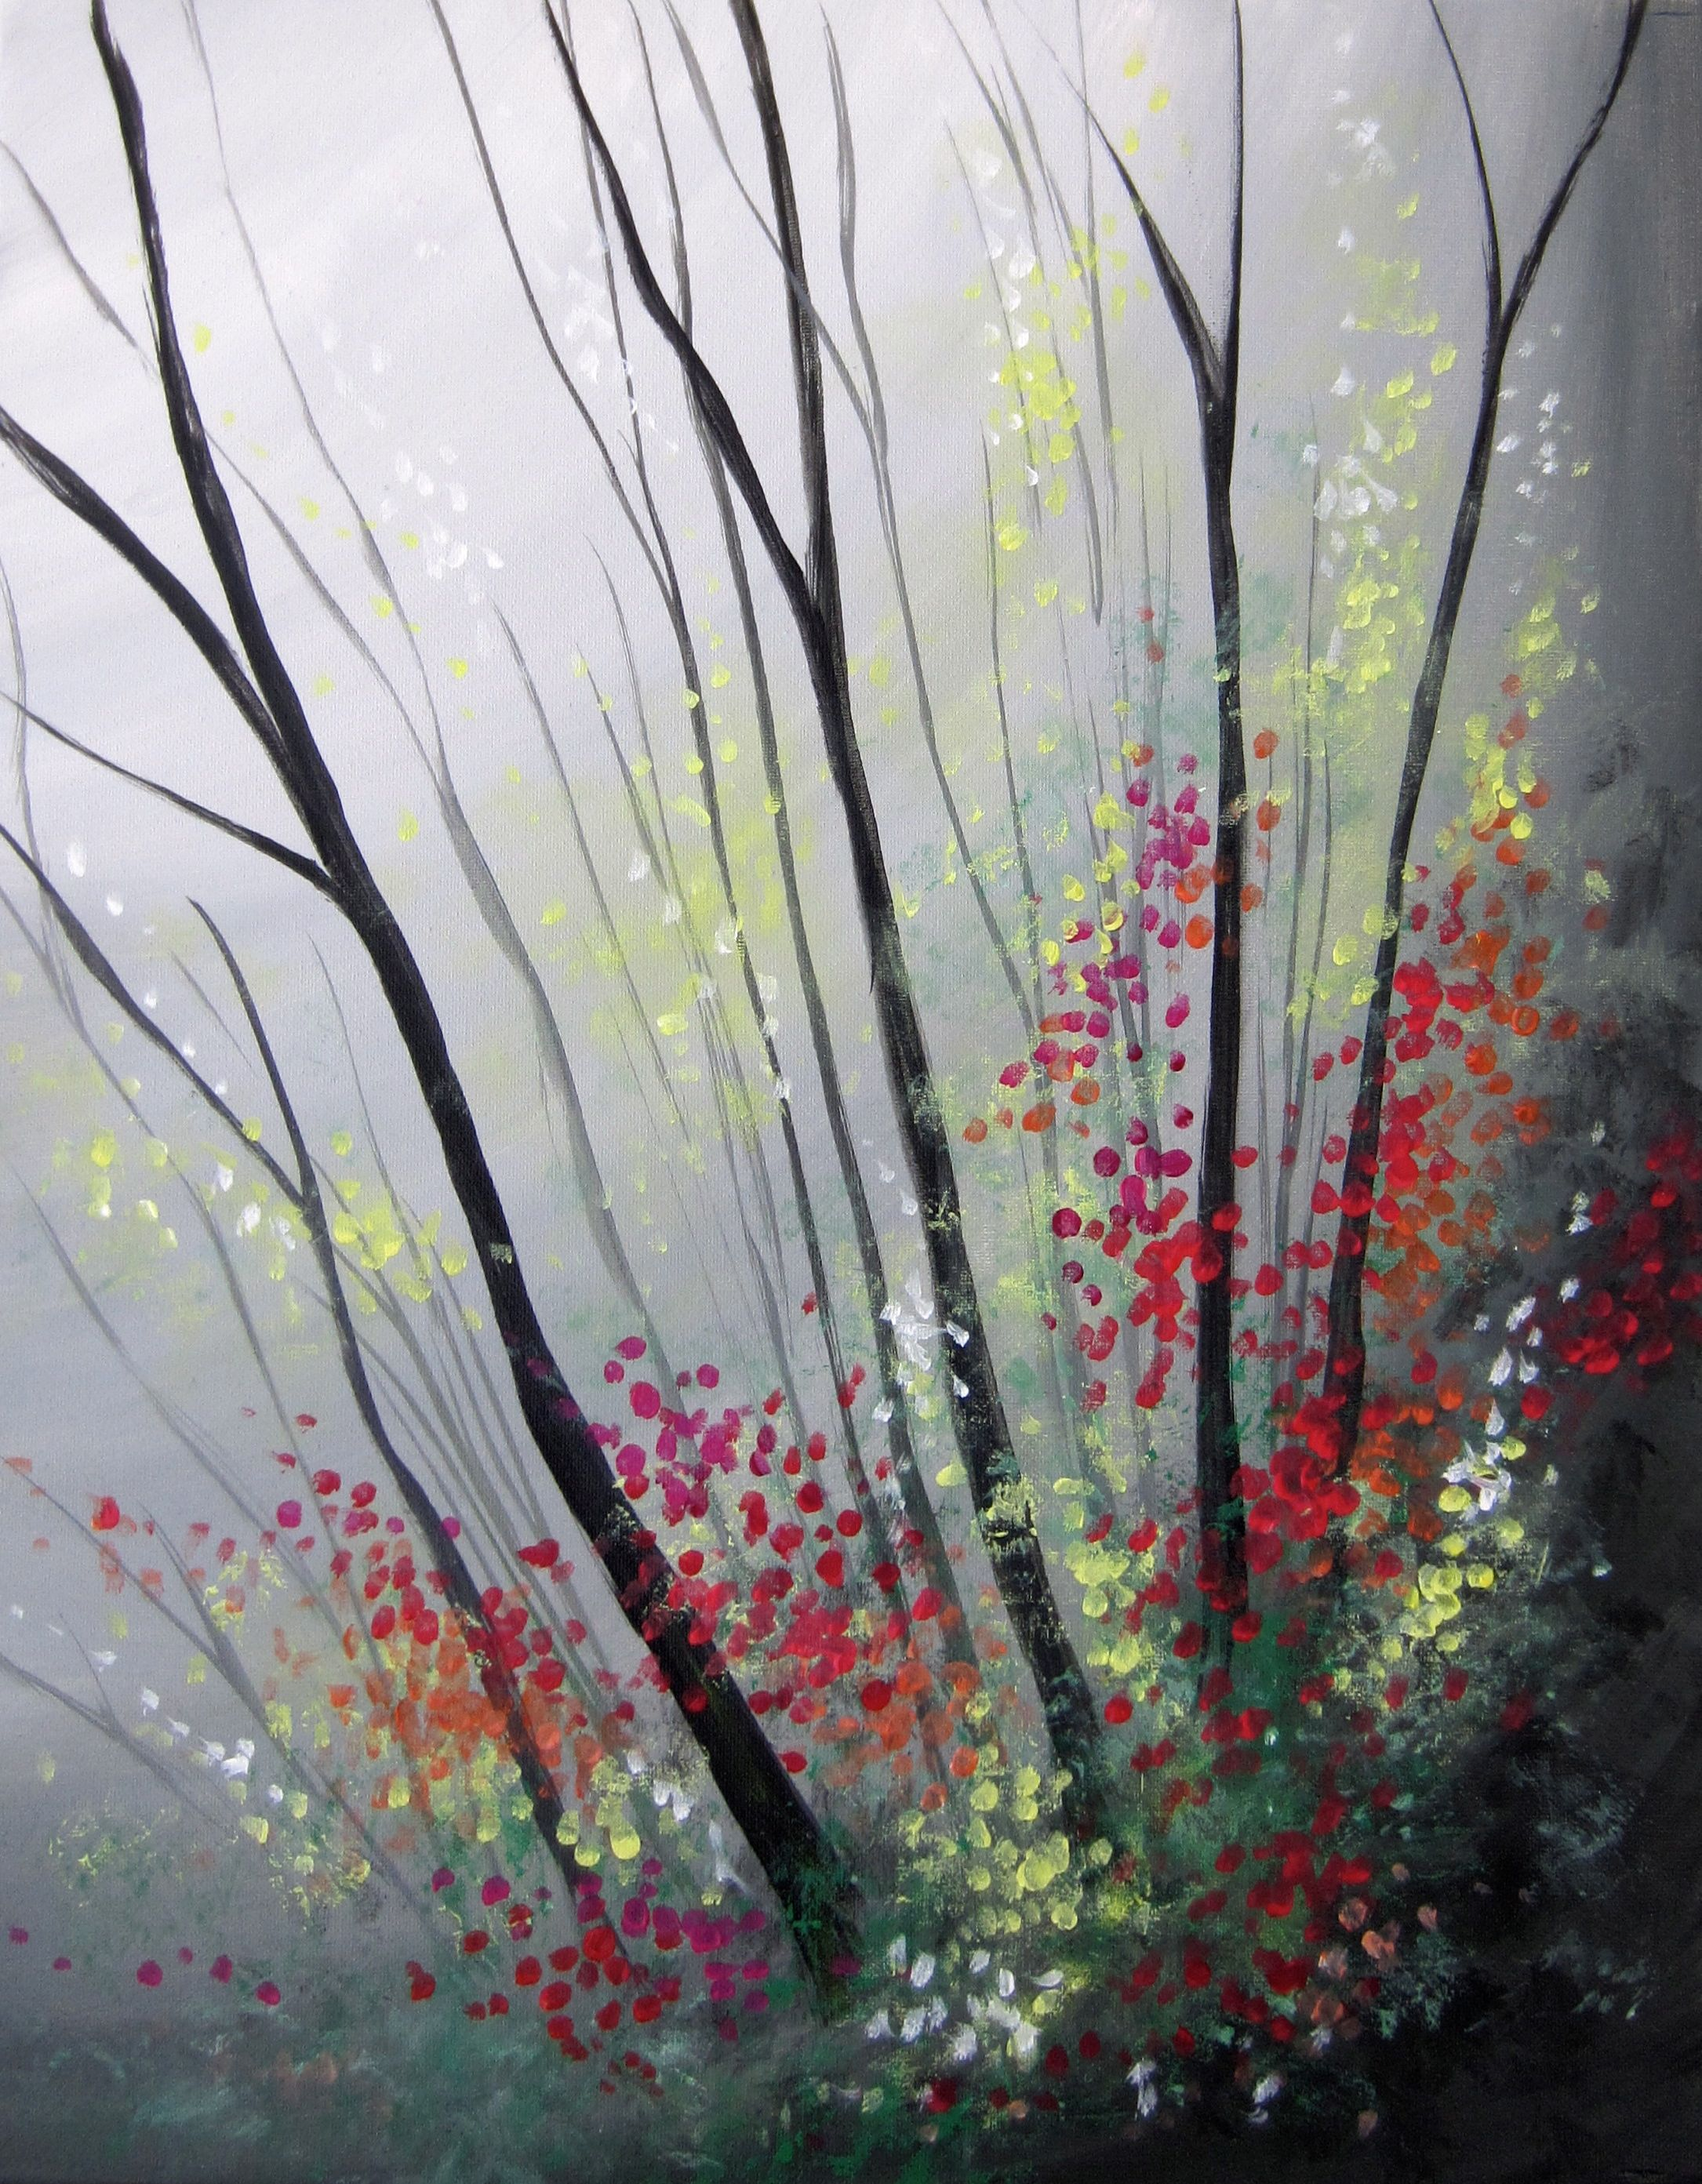 Find Your Next Paint Night Canvas Painting Projects Canvas